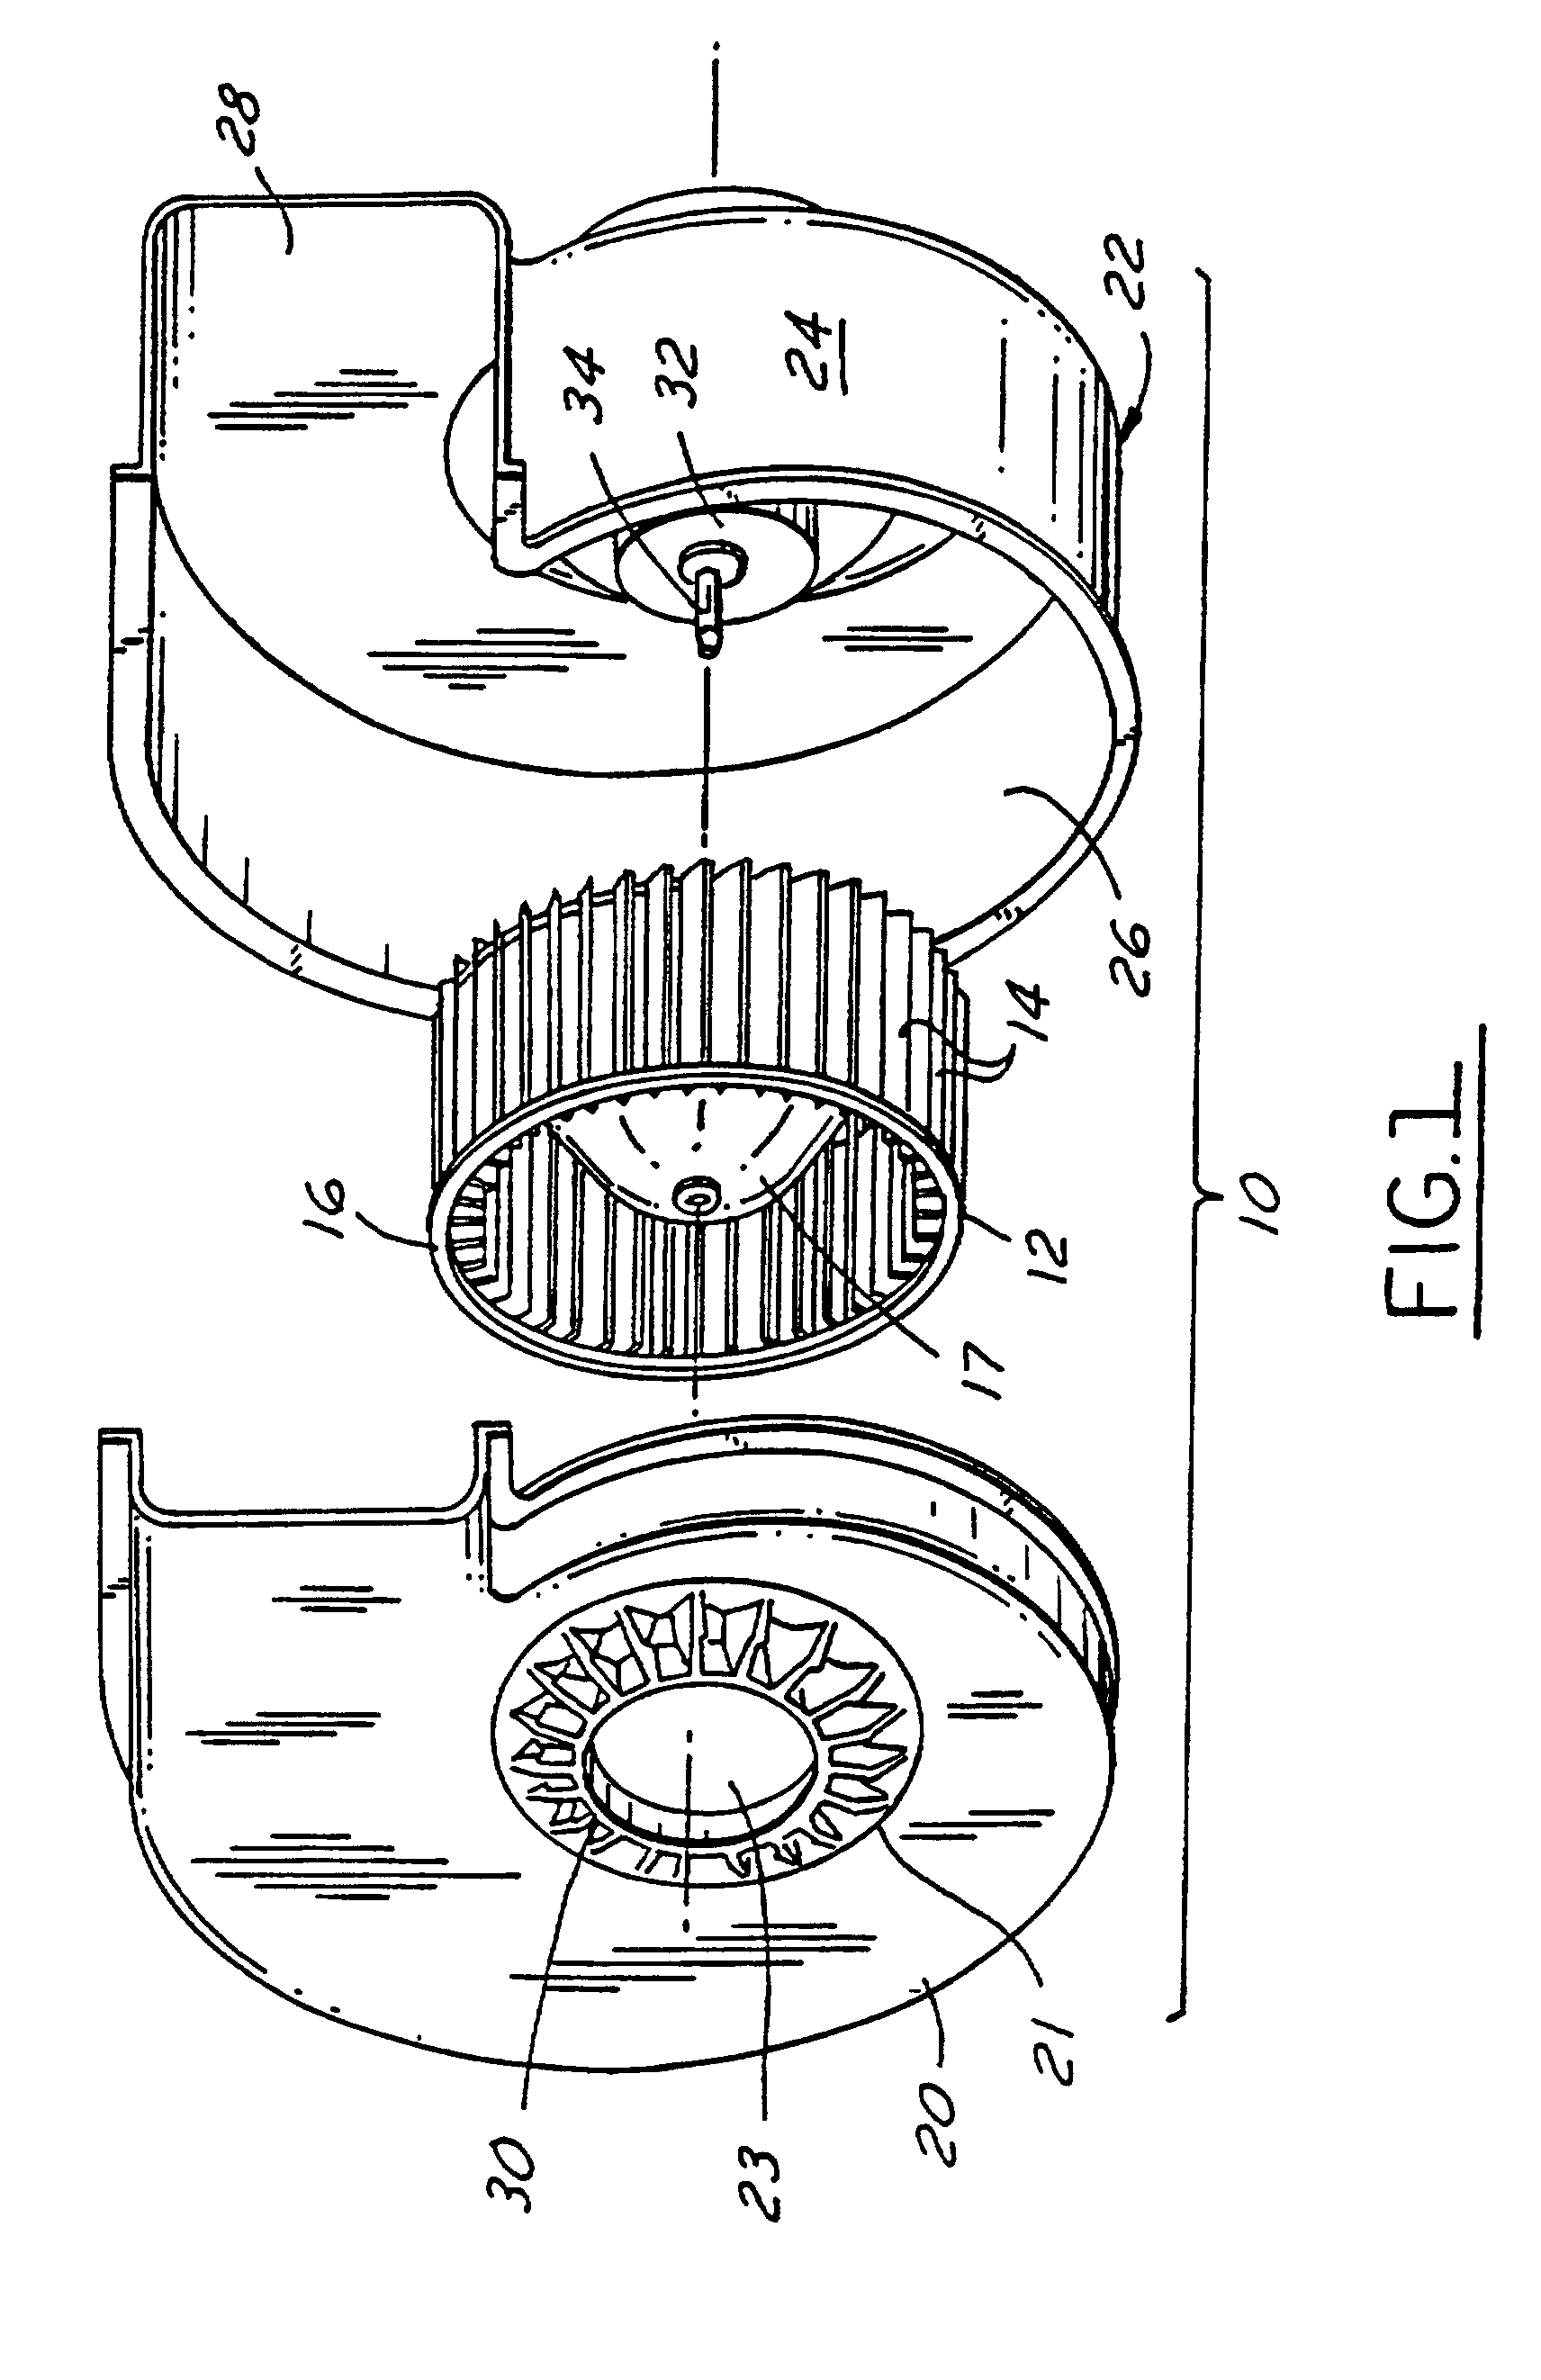 Patent EP0971131B1 Centrifugal blower assembly for an automotive  #3A3A3A